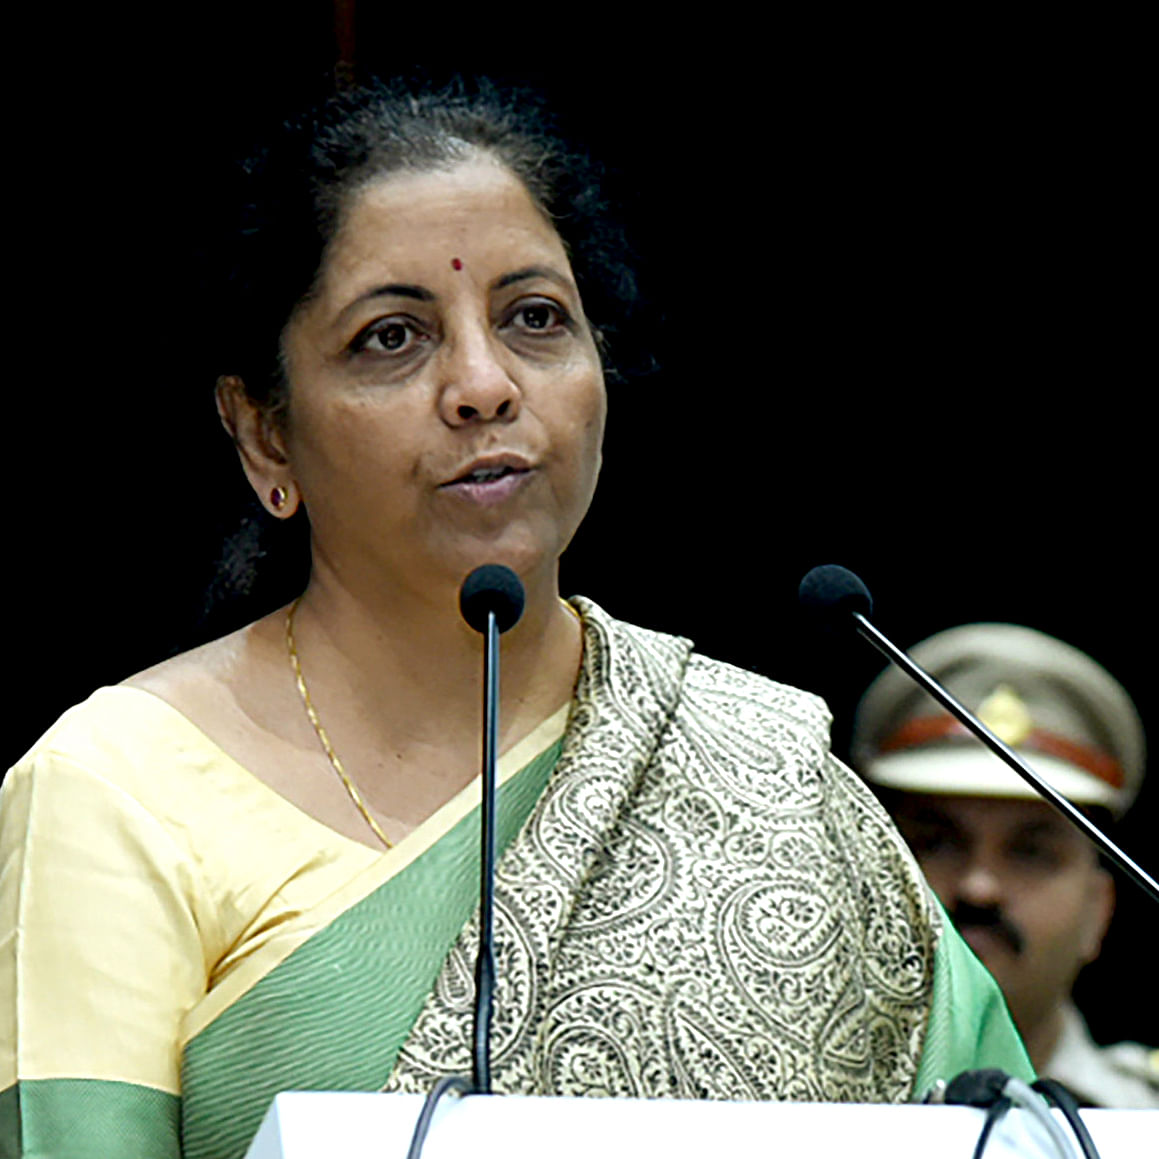 Indian economy currently facing challenges: Nirmala Sitharaman